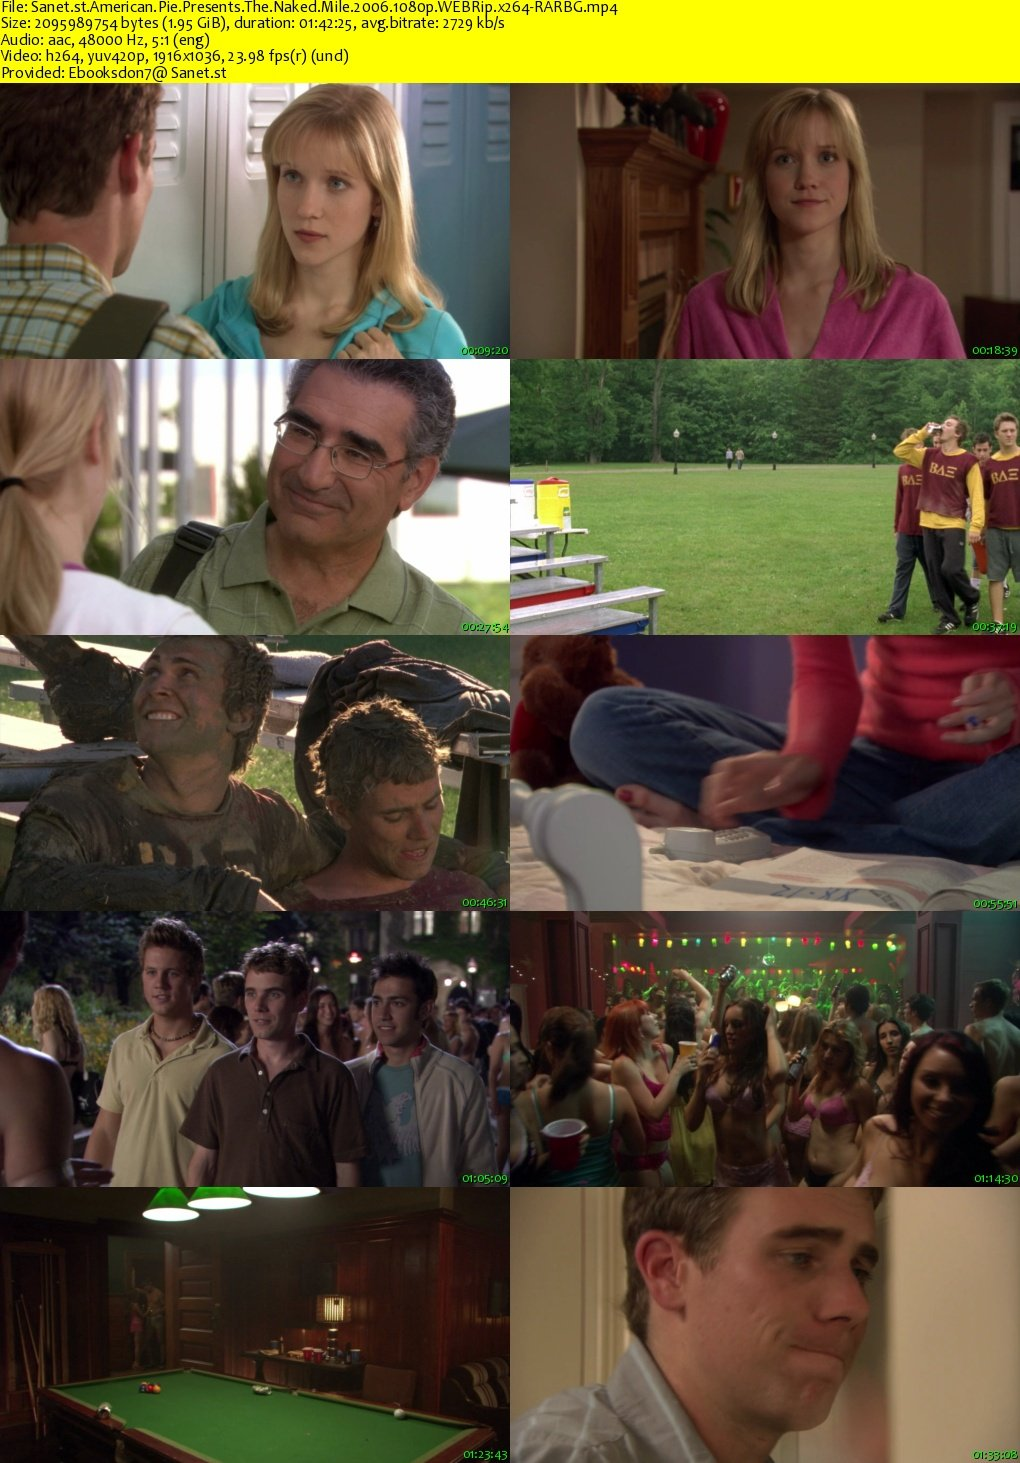 American Pie Screenshots download american pie presents the naked mile 2006 1080p